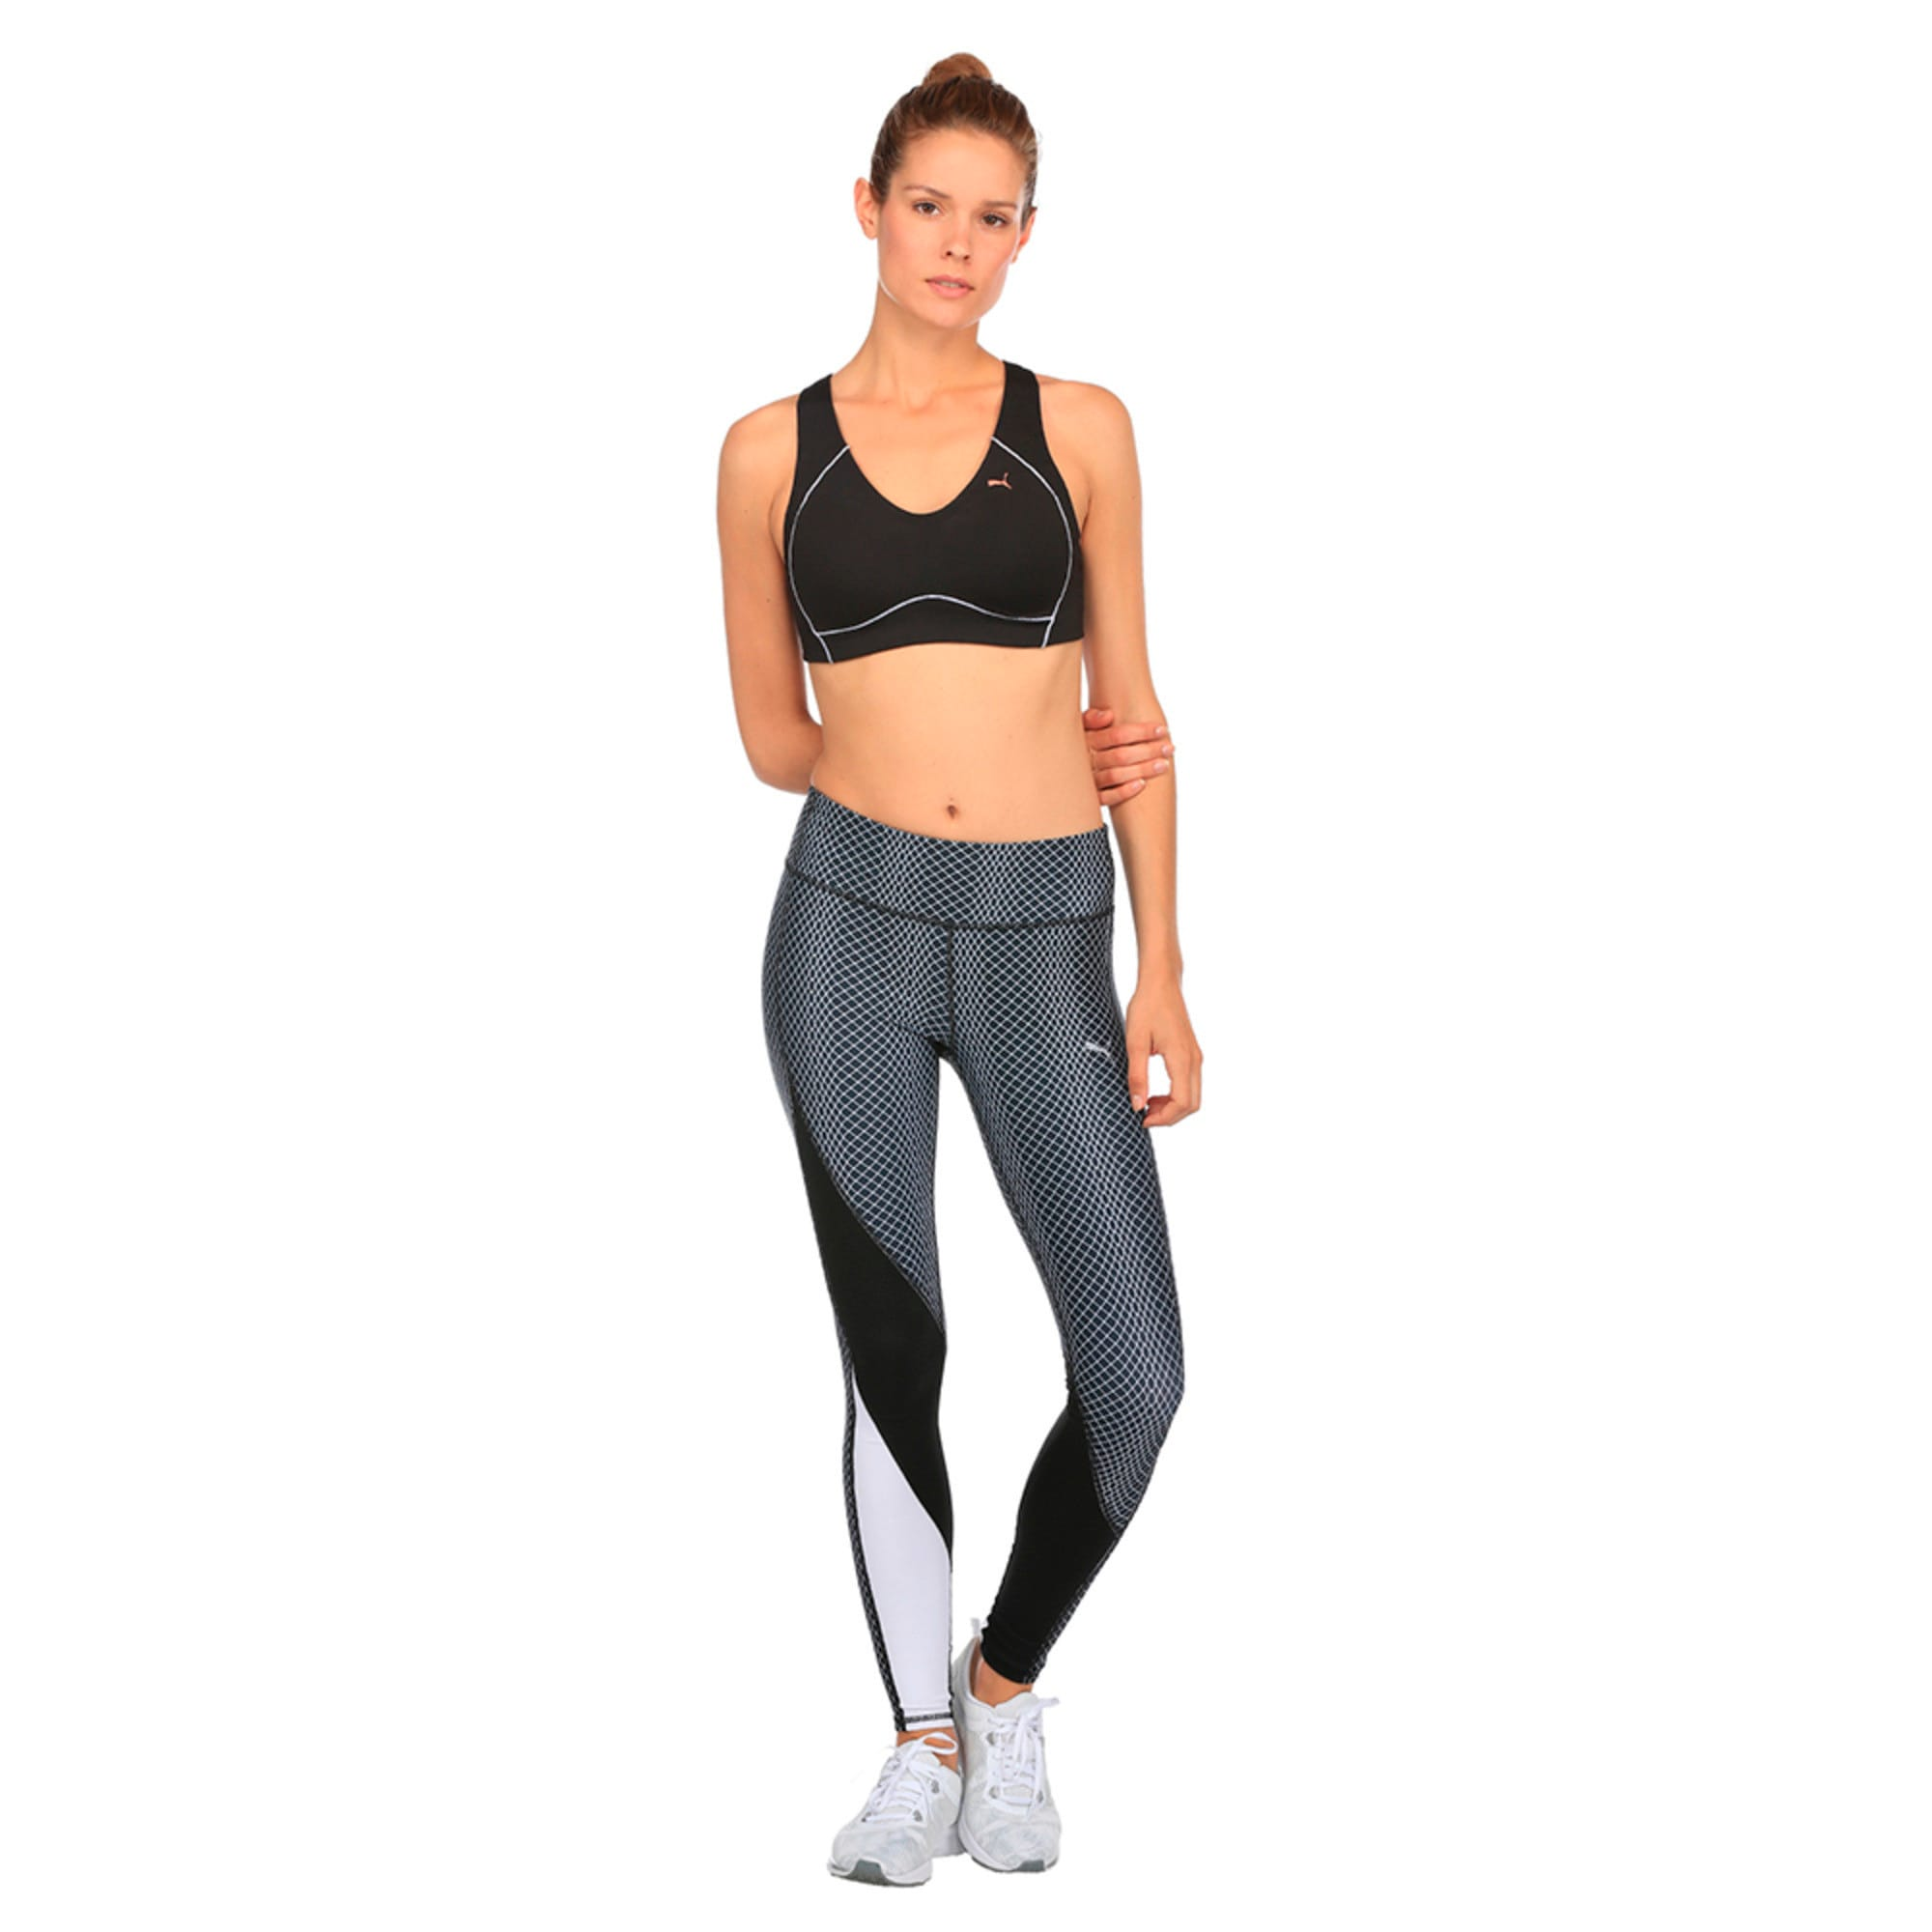 Thumbnail 2 of Training Women's PWRRUN Bra Top, Puma Black, medium-IND